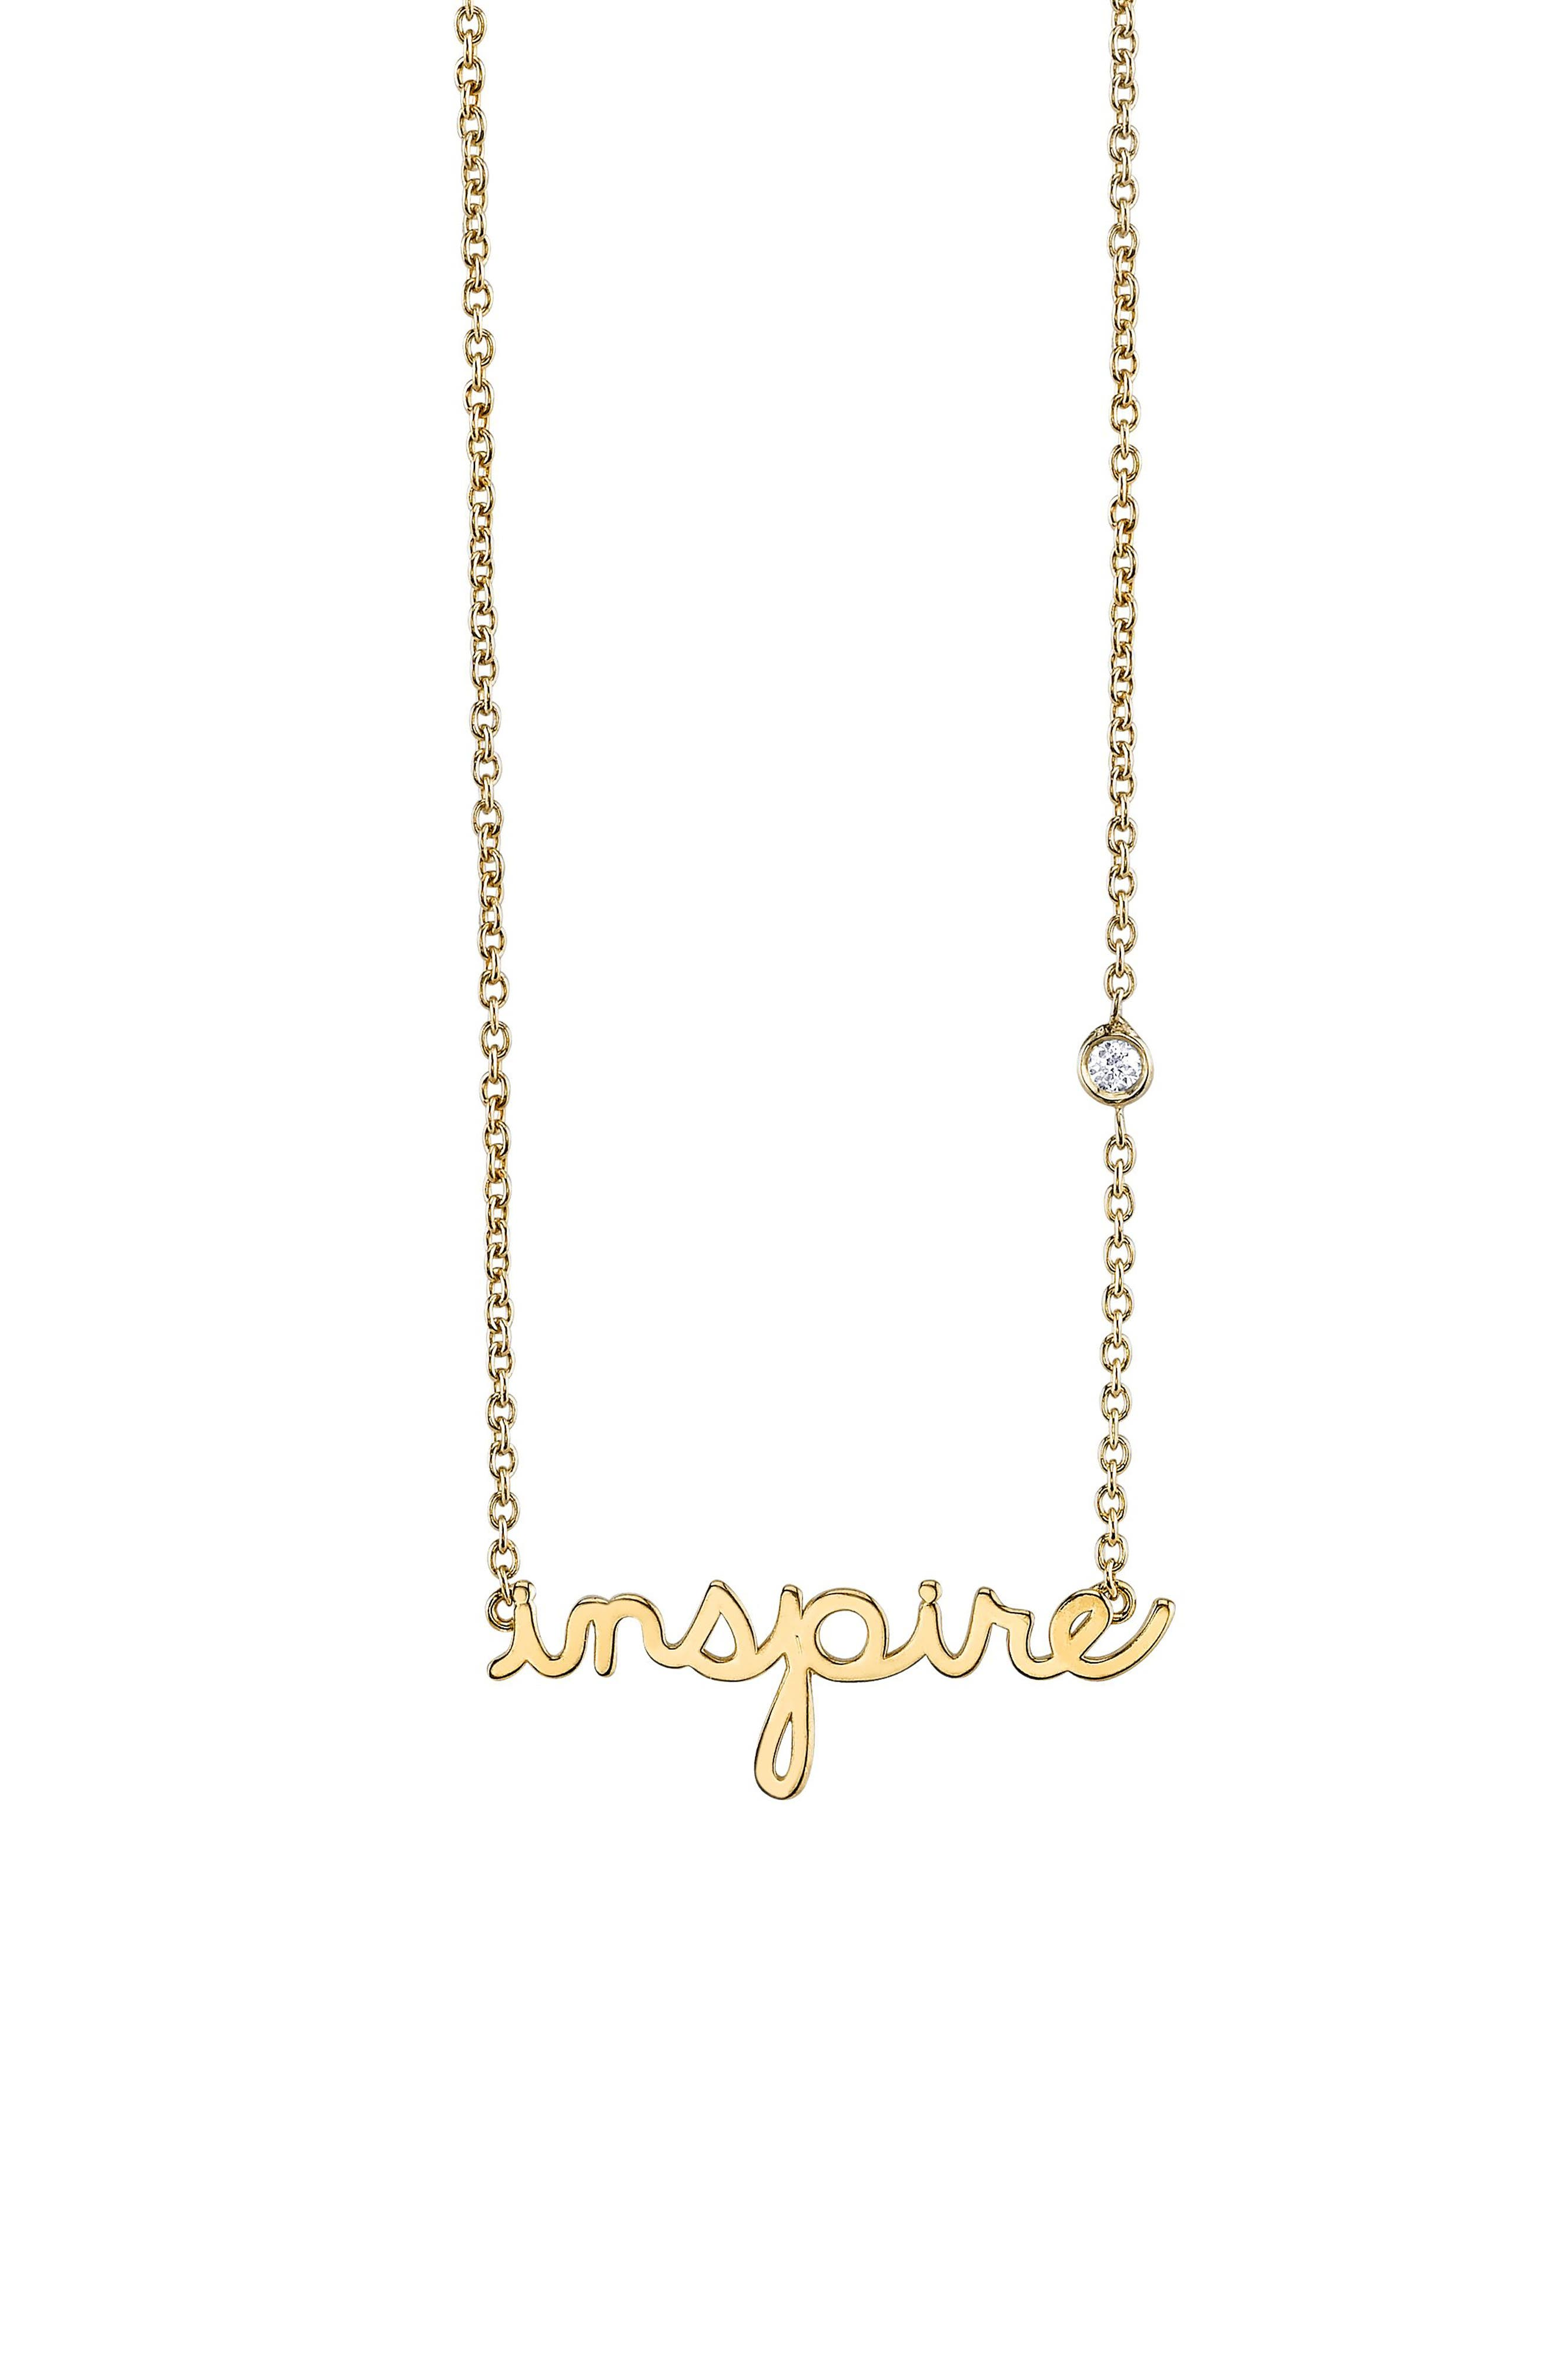 SHY BY SE INSPIRE NECKLACE